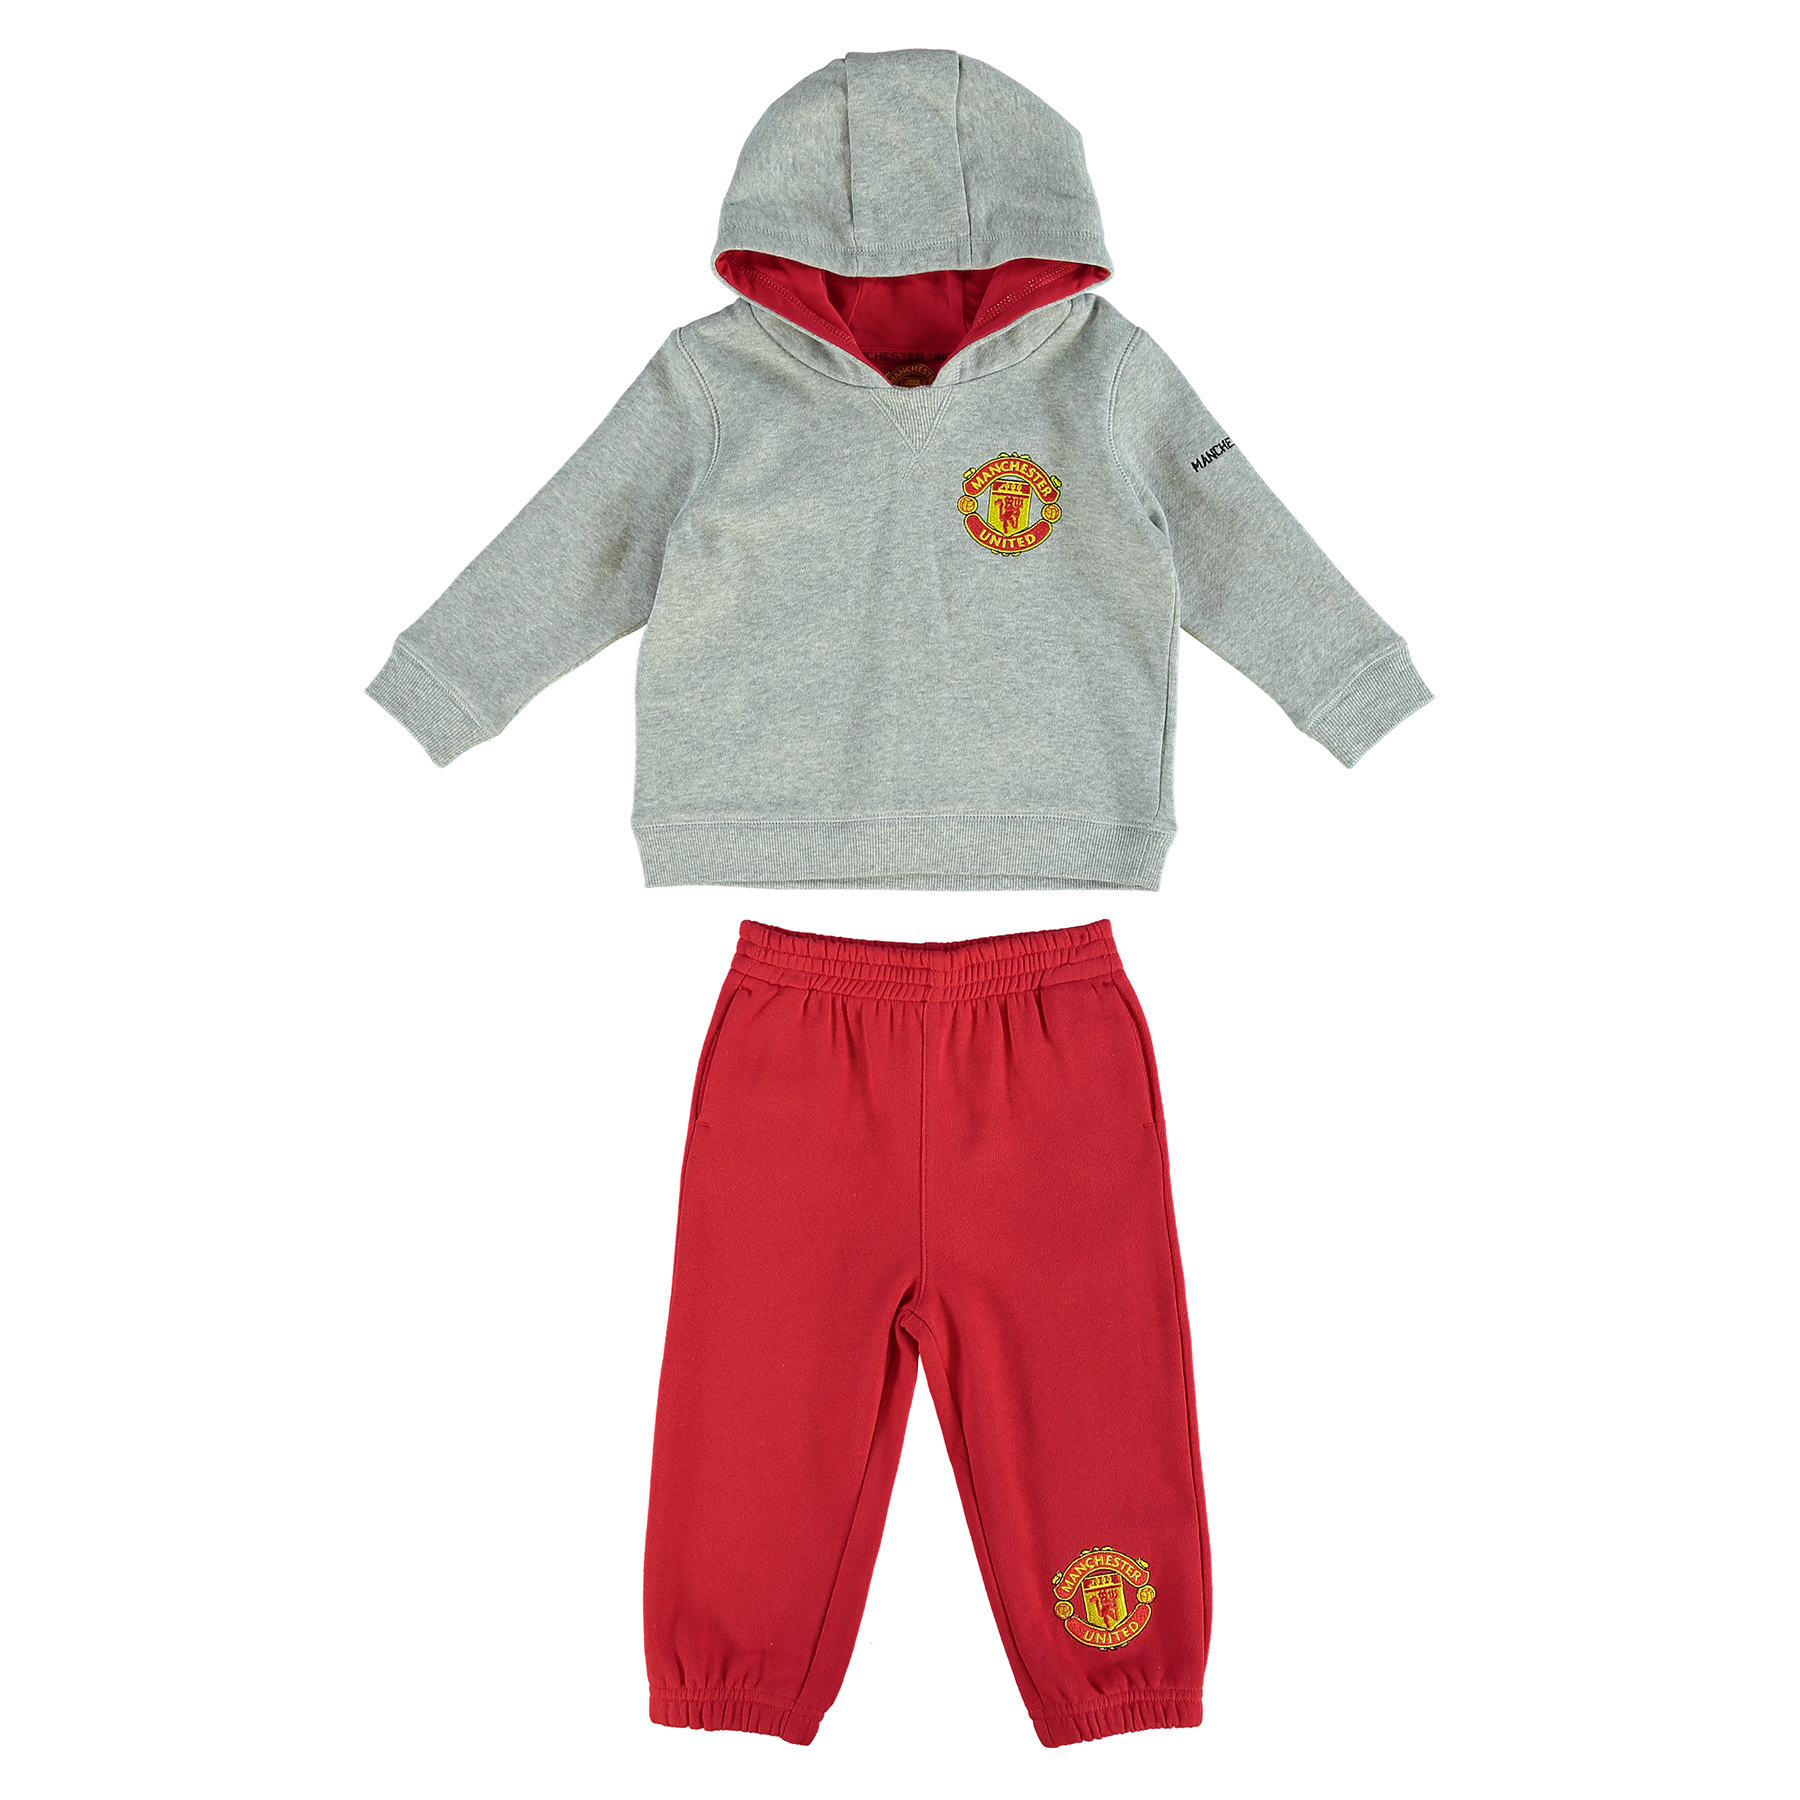 Manchester United Fleece Jog Suit - Grey Marl/Red - Baby